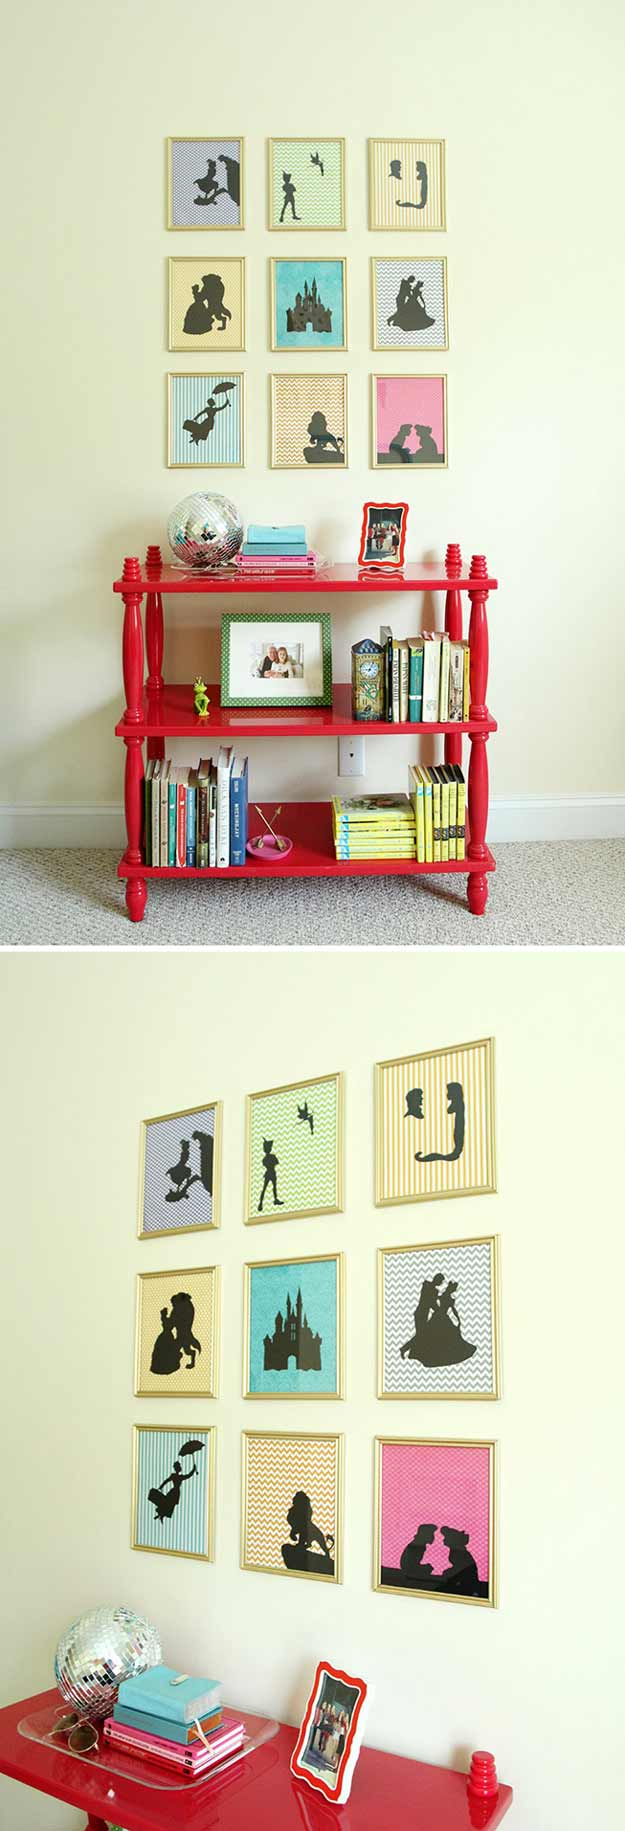 15 enchanted diy teen girl room ideas for disney fans new craft works - Teenage wall art ideas ...